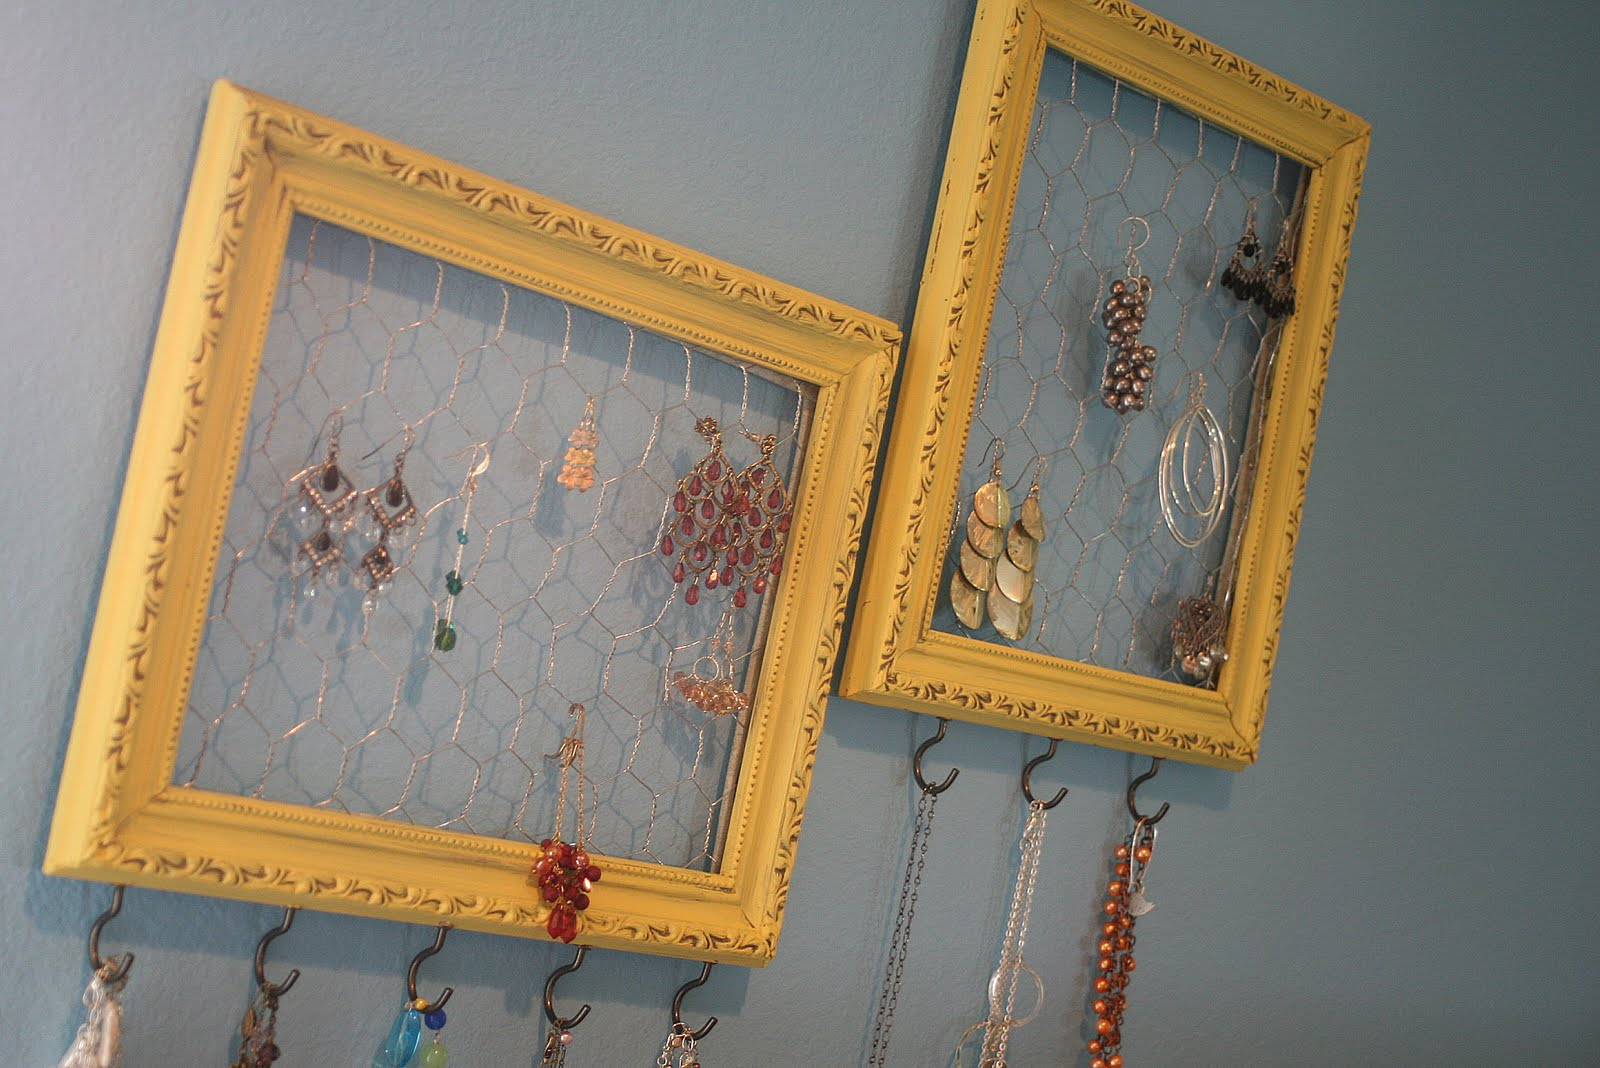 DIY Extreme Jewelry Organizer On My Side of the Room